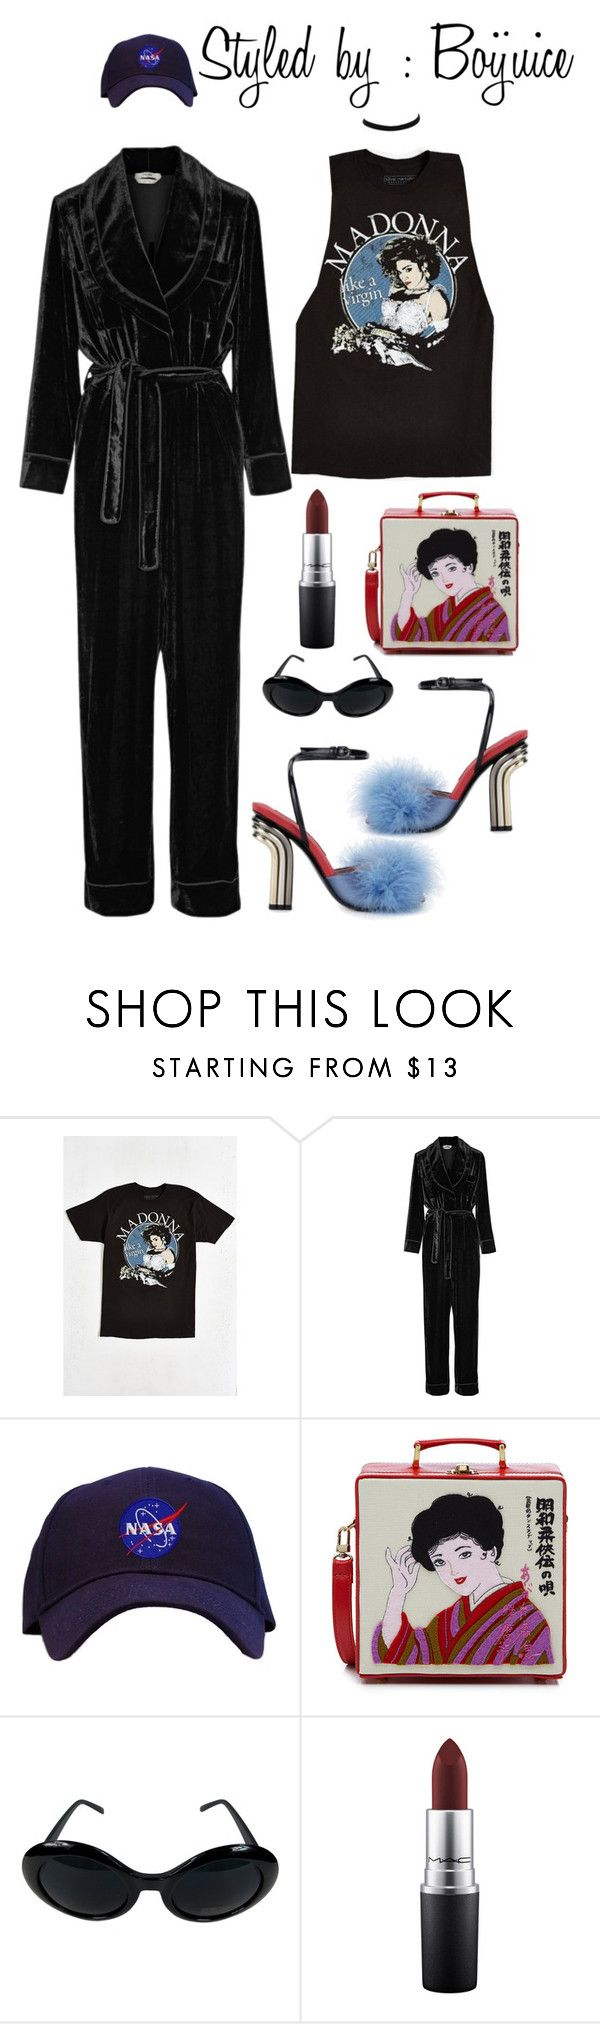 """""""Night life 2016"""" by boijuice ❤ liked on Polyvore featuring Urban Outfitters, Fendi, Olympia Le-Tan, MAC Cosmetics and River Island"""